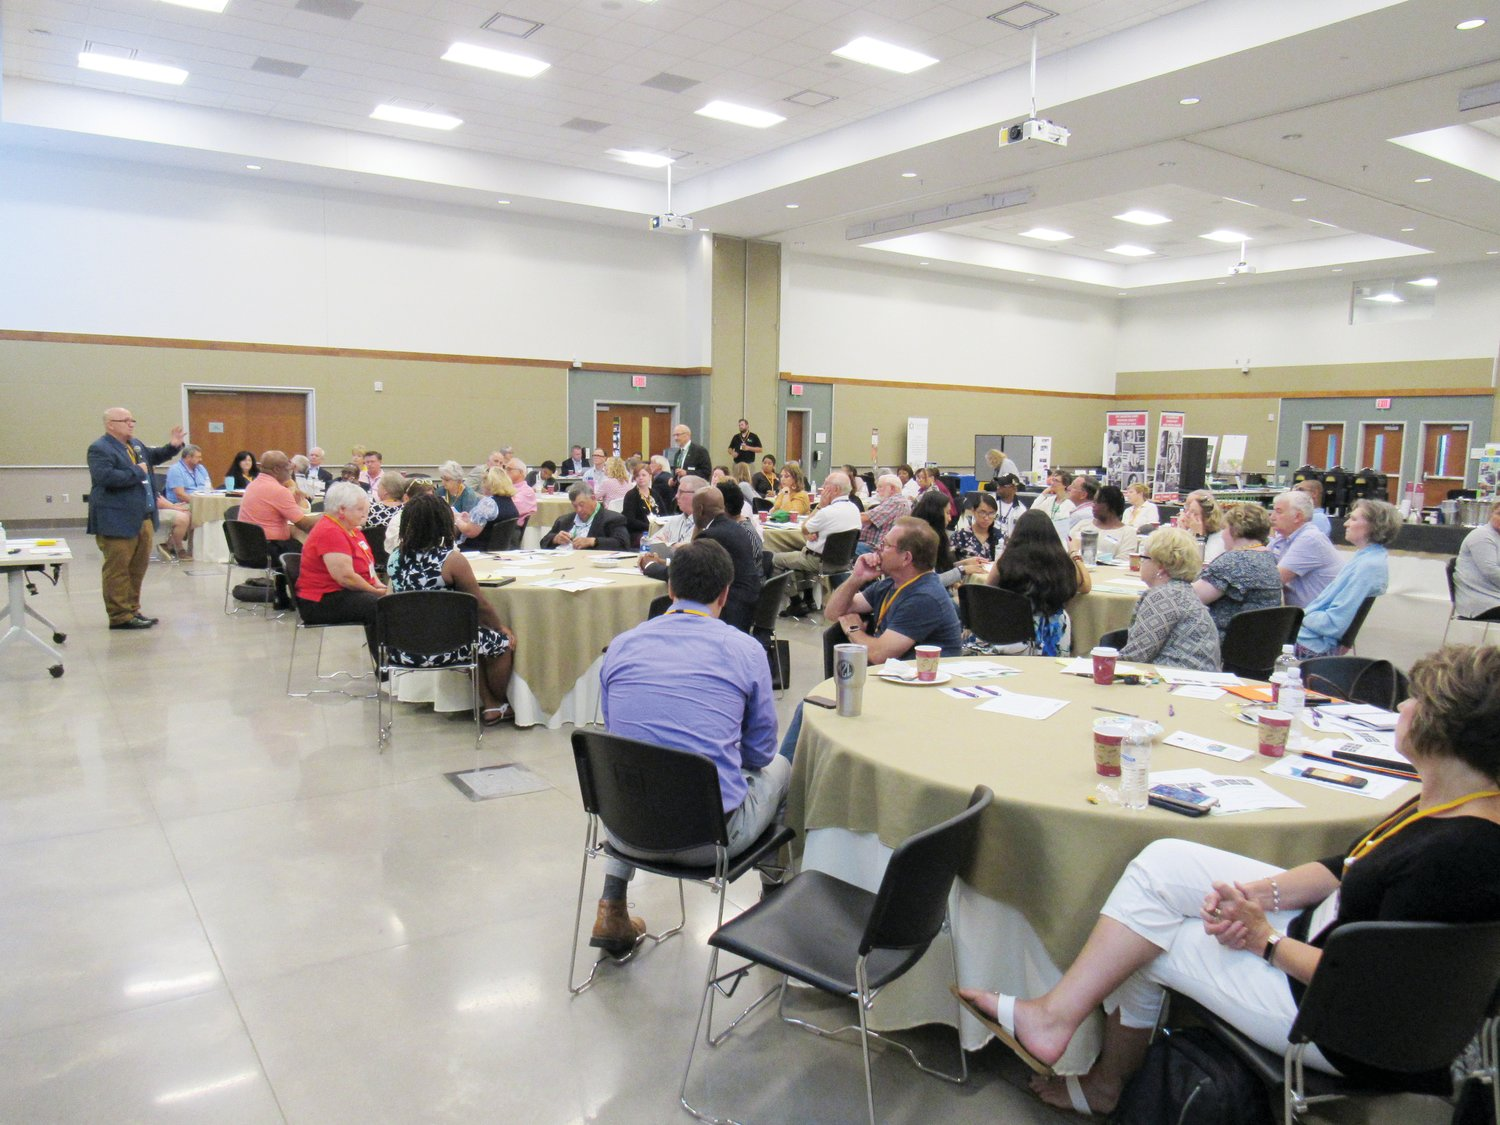 Rich Gwaltney (left, dark blue jacket) leads the discussion August 12 at the Chatham Council on Aging's Clergy Summit at the Chatham County Agricultural and Conference Center in Pittsboro.